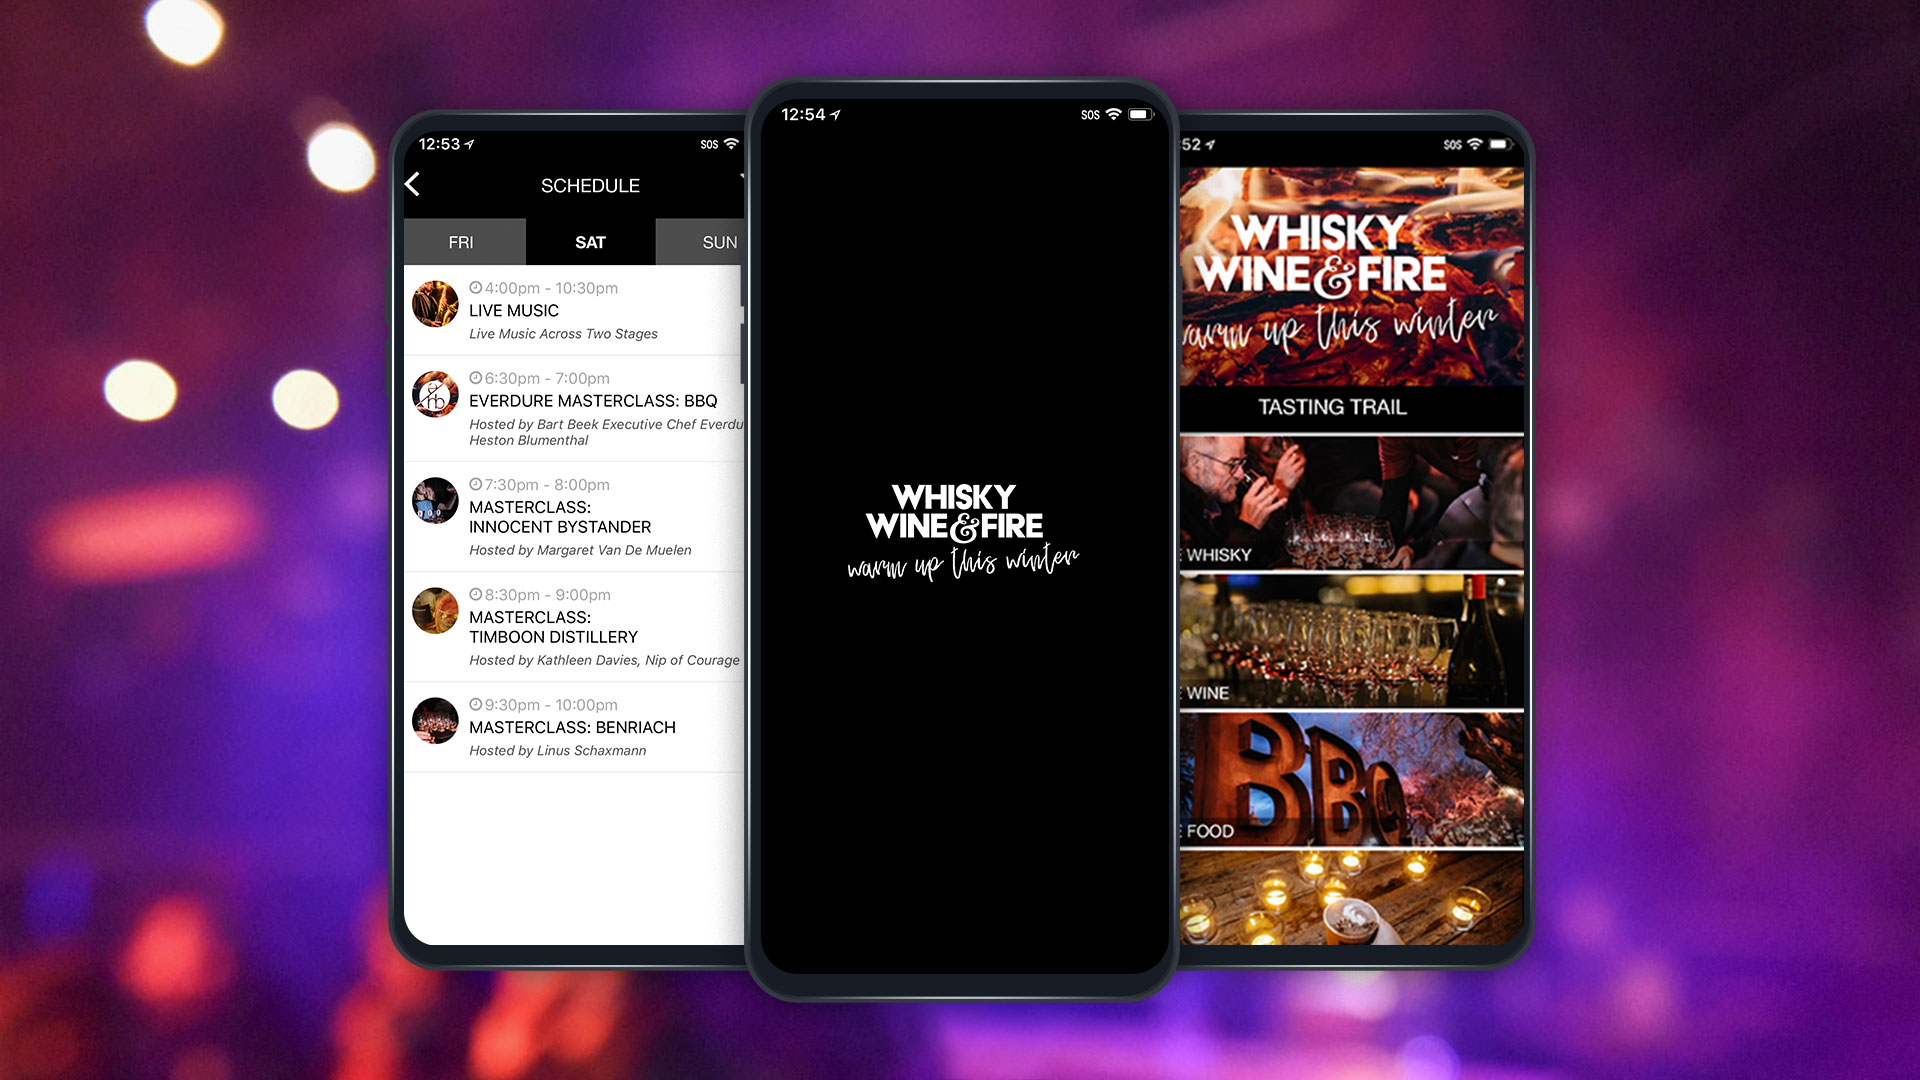 whiskey wine and fire event app